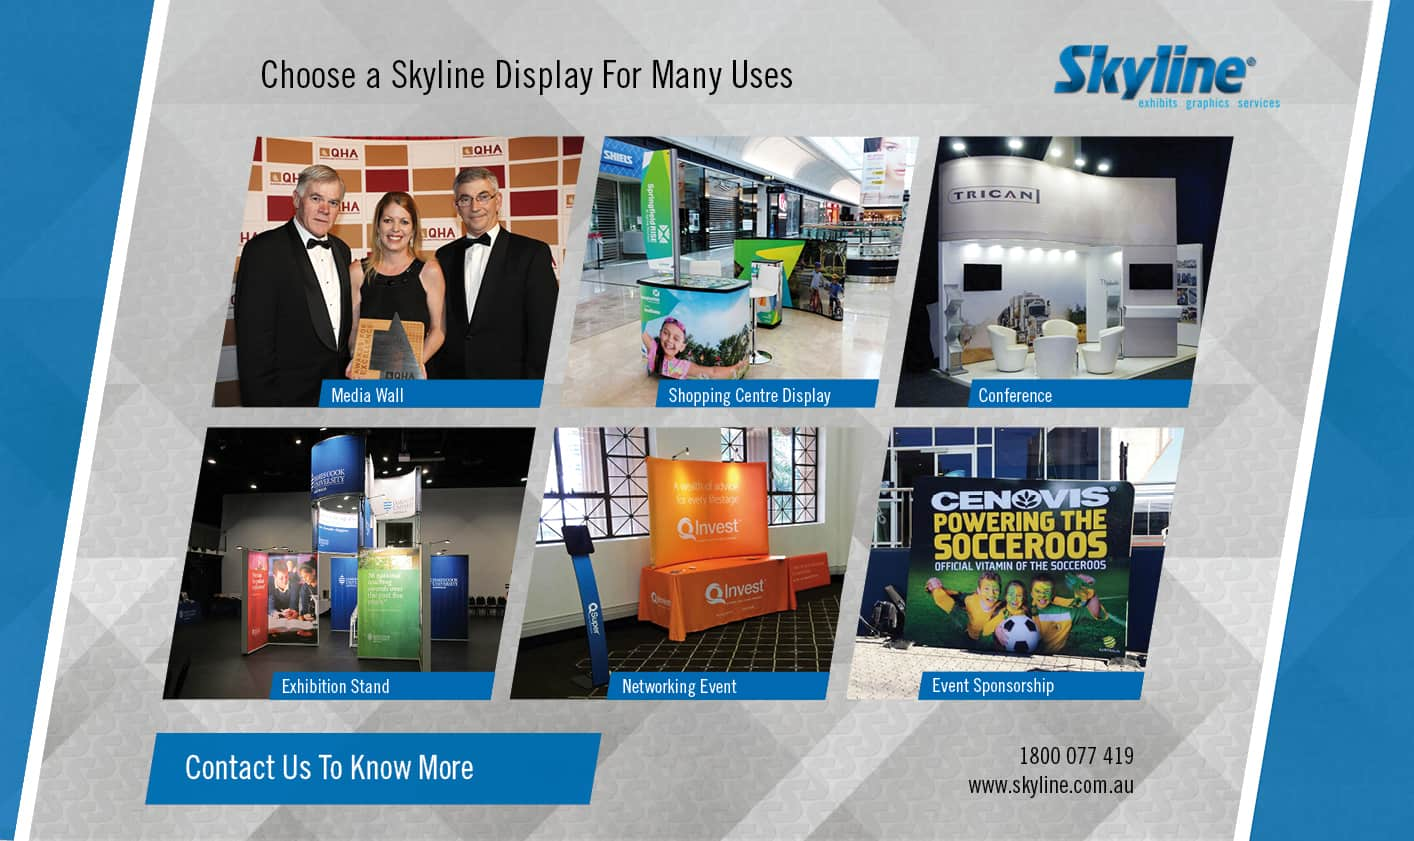 Skyline-Displays-For-Many-Uses-Web-Banners